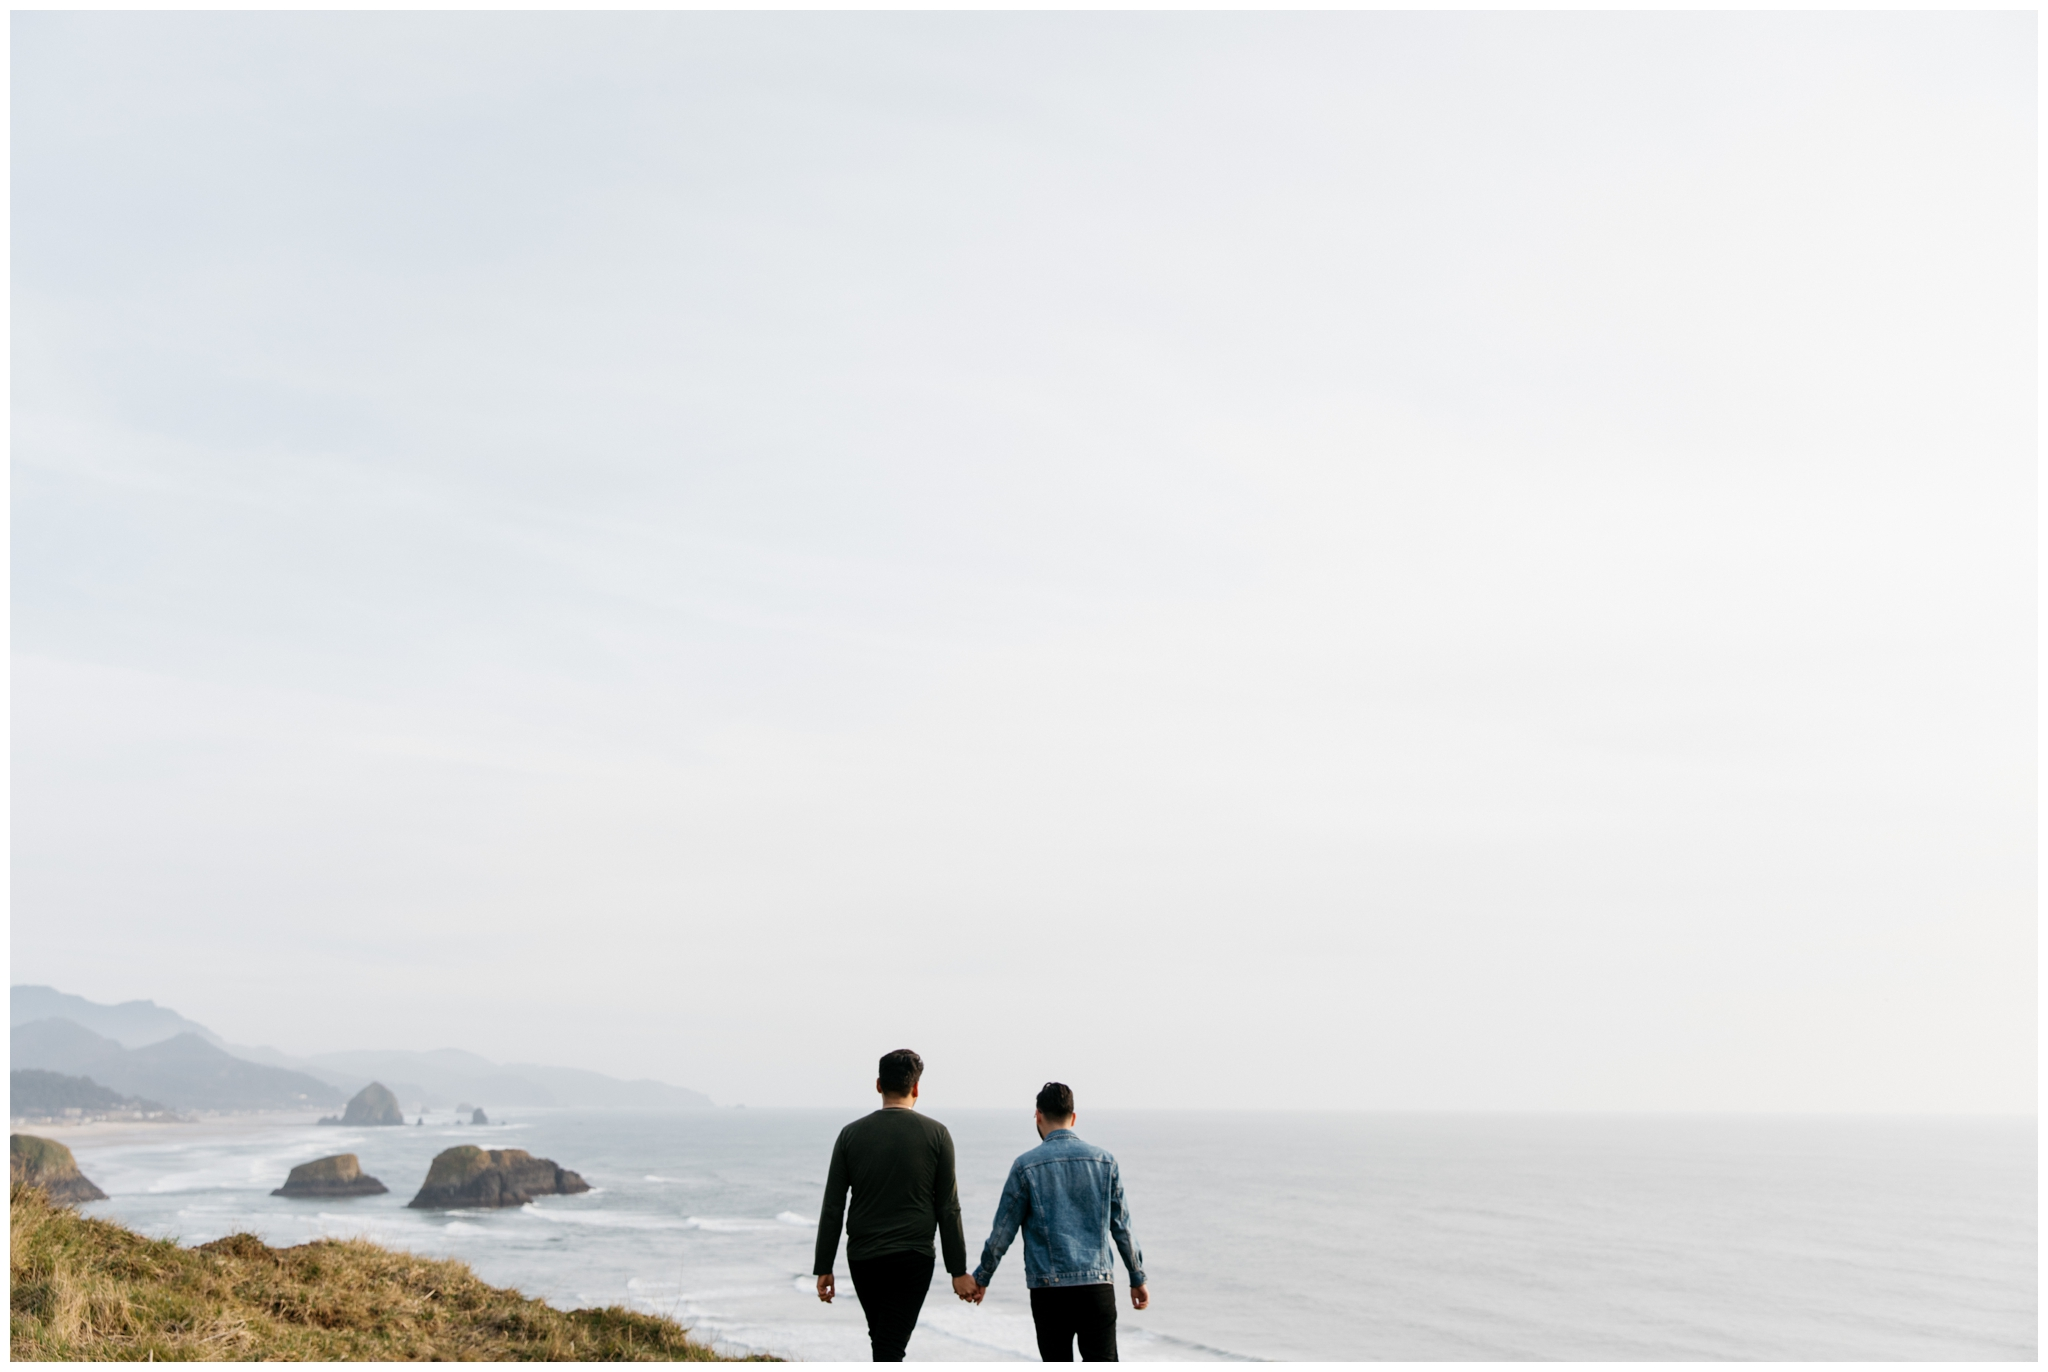 Cannon Beach Engagement With Brittney Hyatt Photography Seattle Wedding and Elopement Photographer. Same-sex couple proposes to each other at Ecola State Park on a cliff side overlooking Cannon Beach.